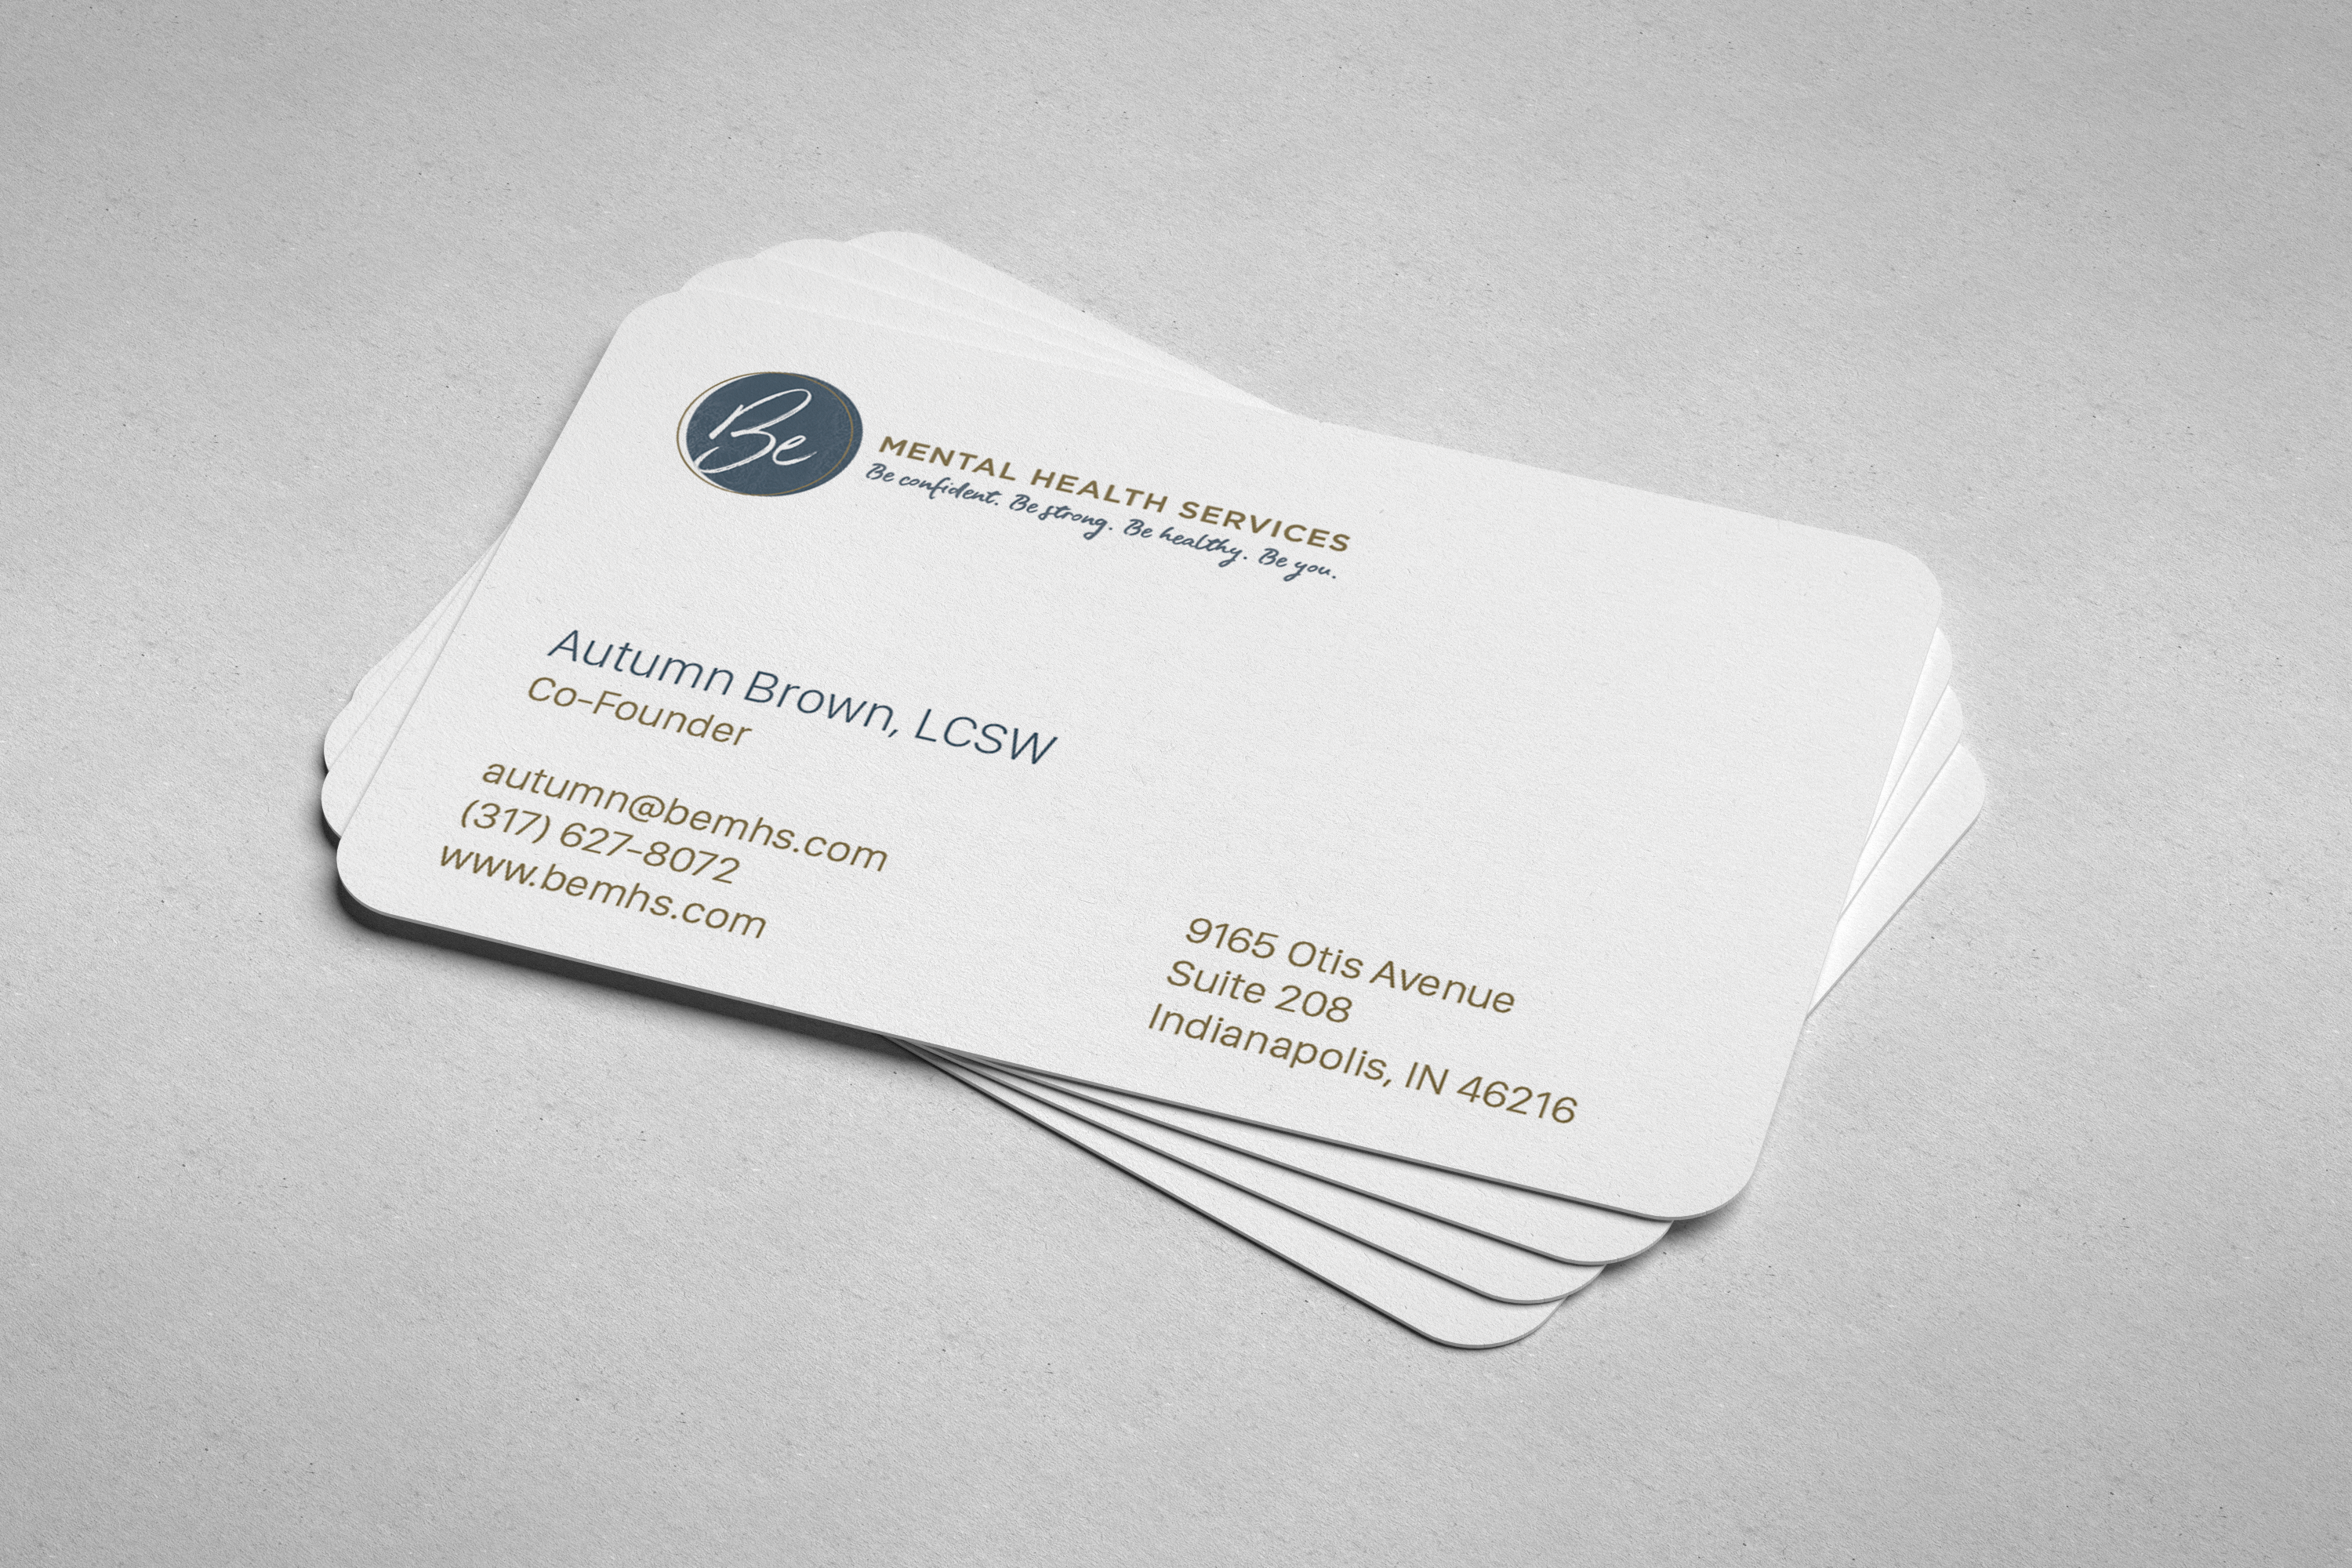 bemhs-Business_Card_Mockup_1